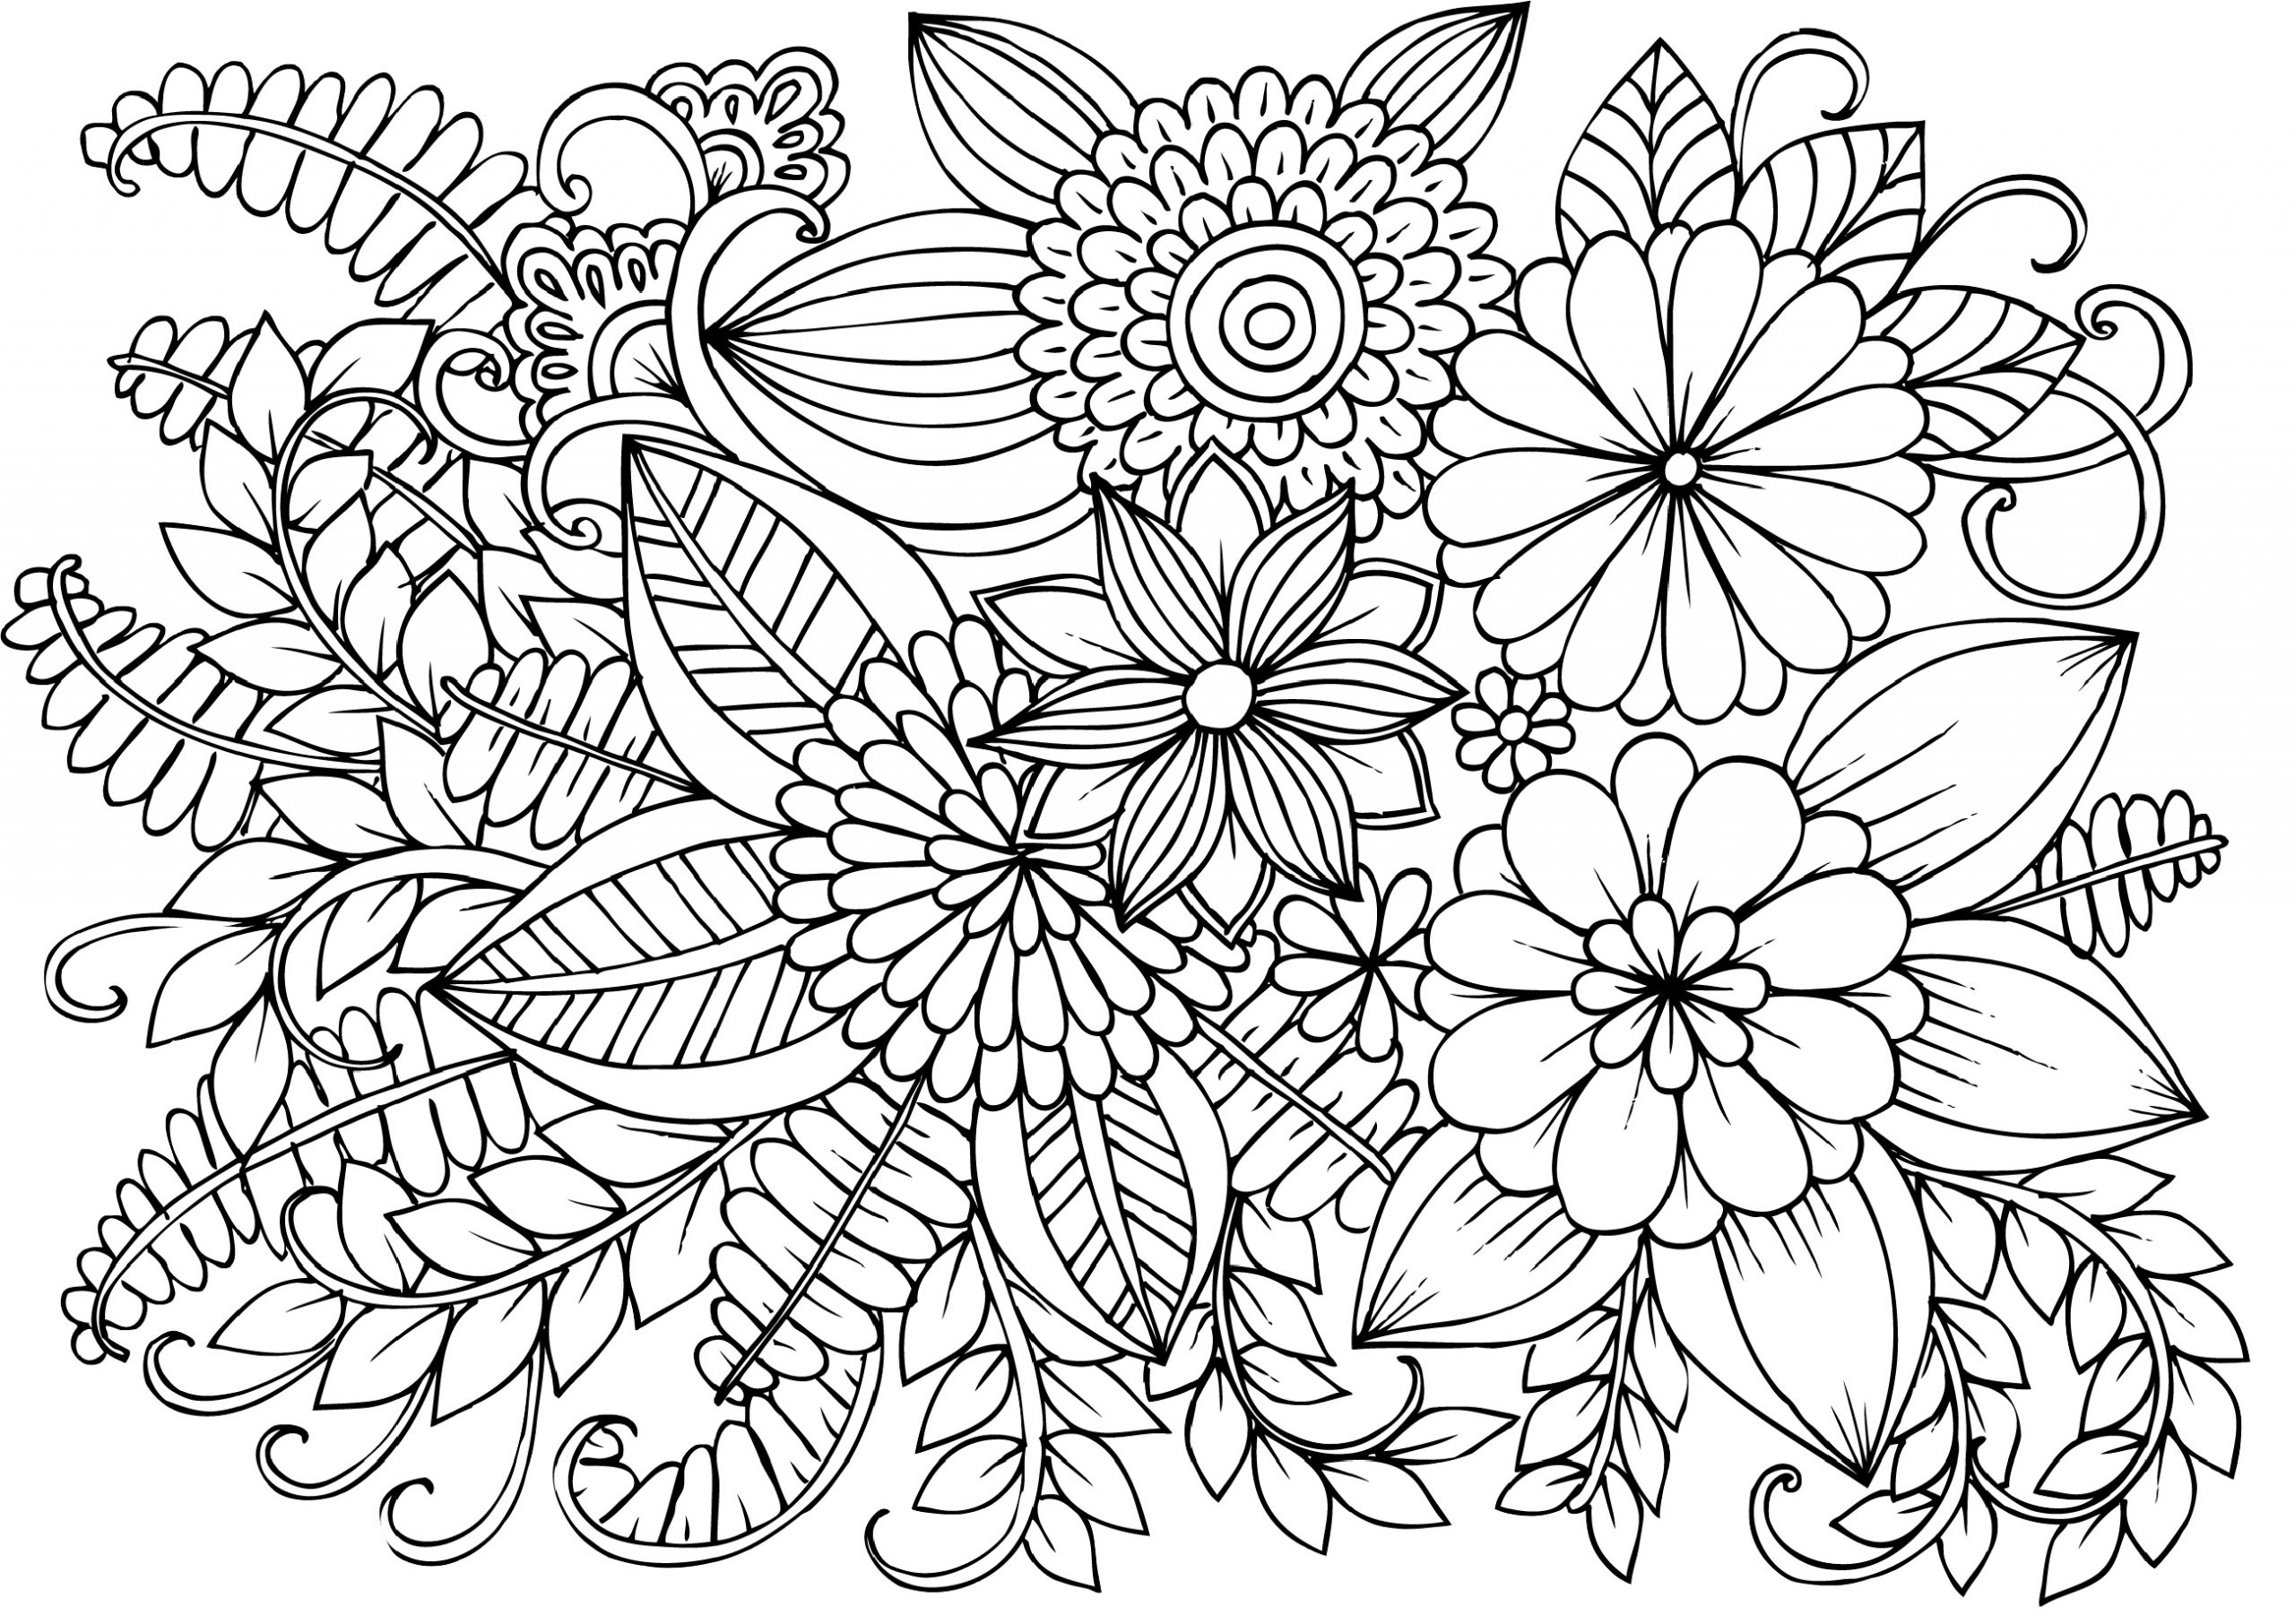 coloring flowers for adults flower coloring pages for adults best coloring pages for adults coloring for flowers